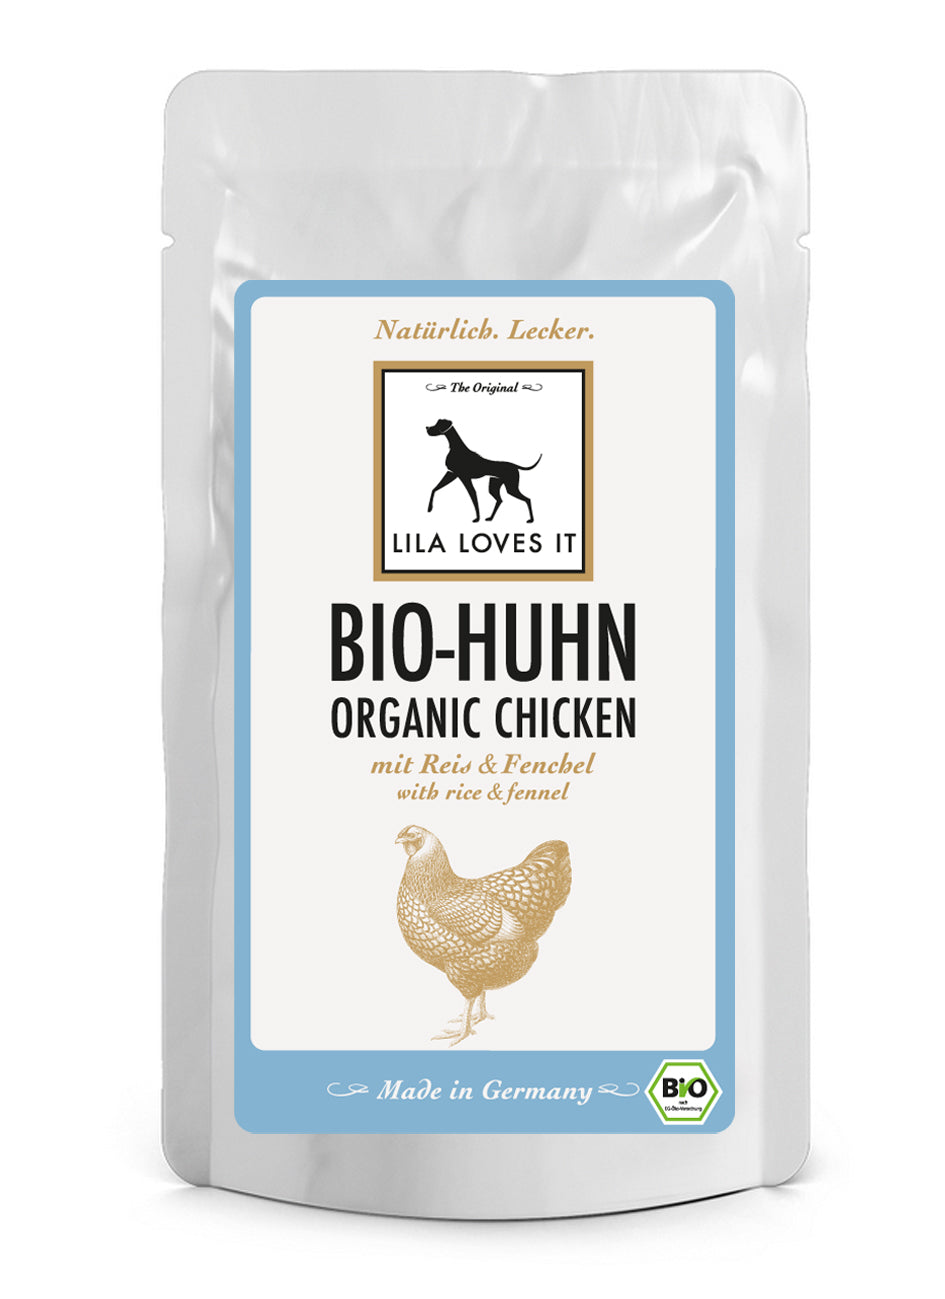 LILA LOVES IT Bio-Huhn mit Reis & Fenchel Pouch